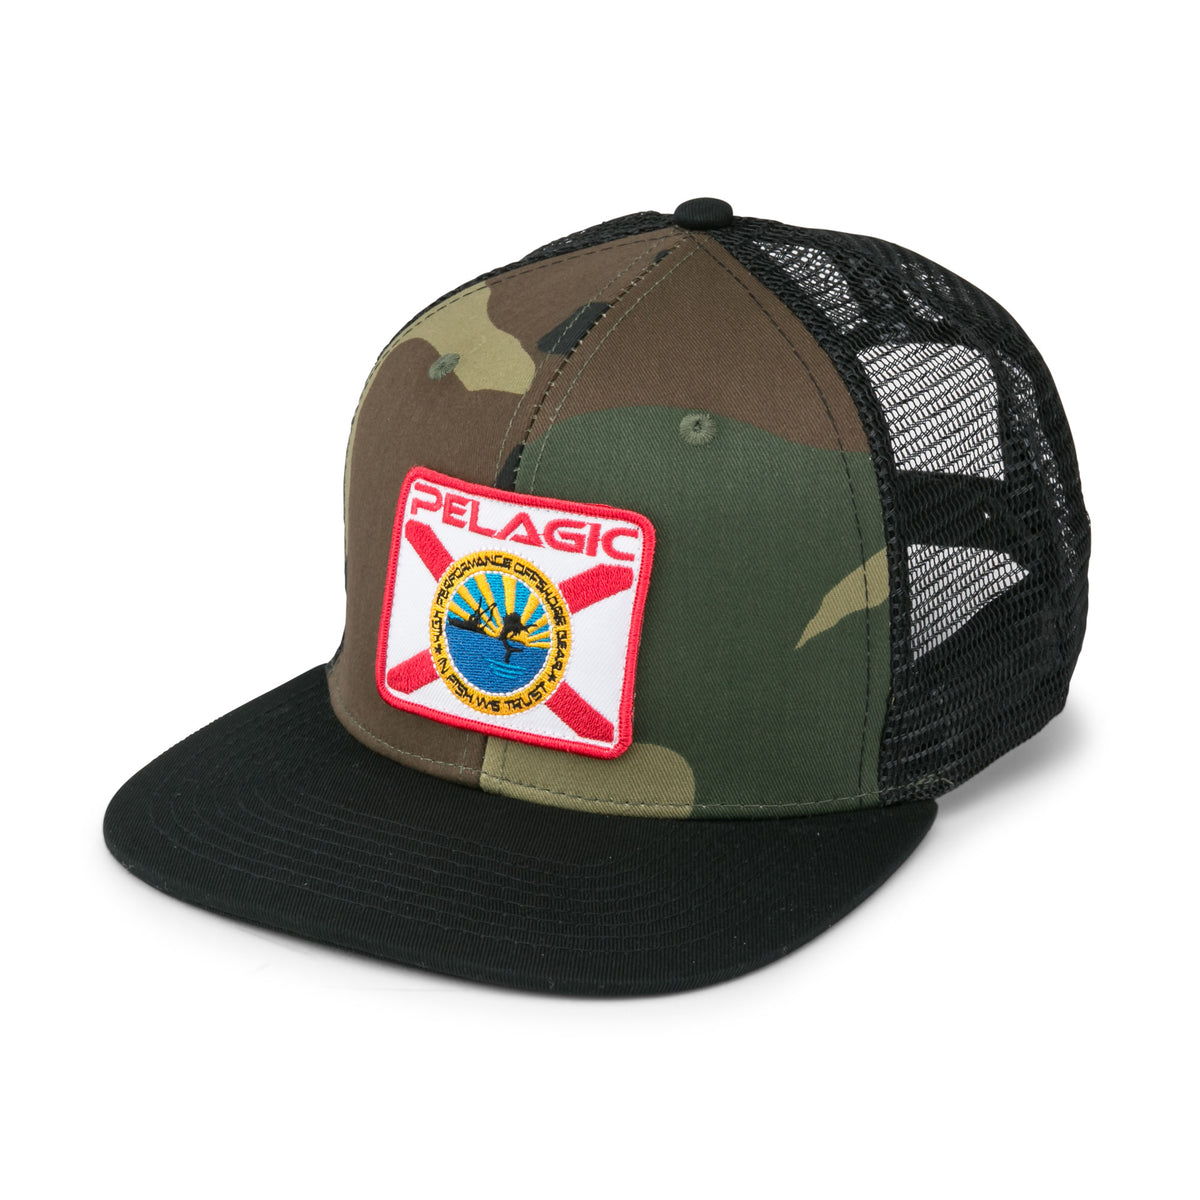 Sailfish Republic Snapback Fishing Hat Big Image - 1